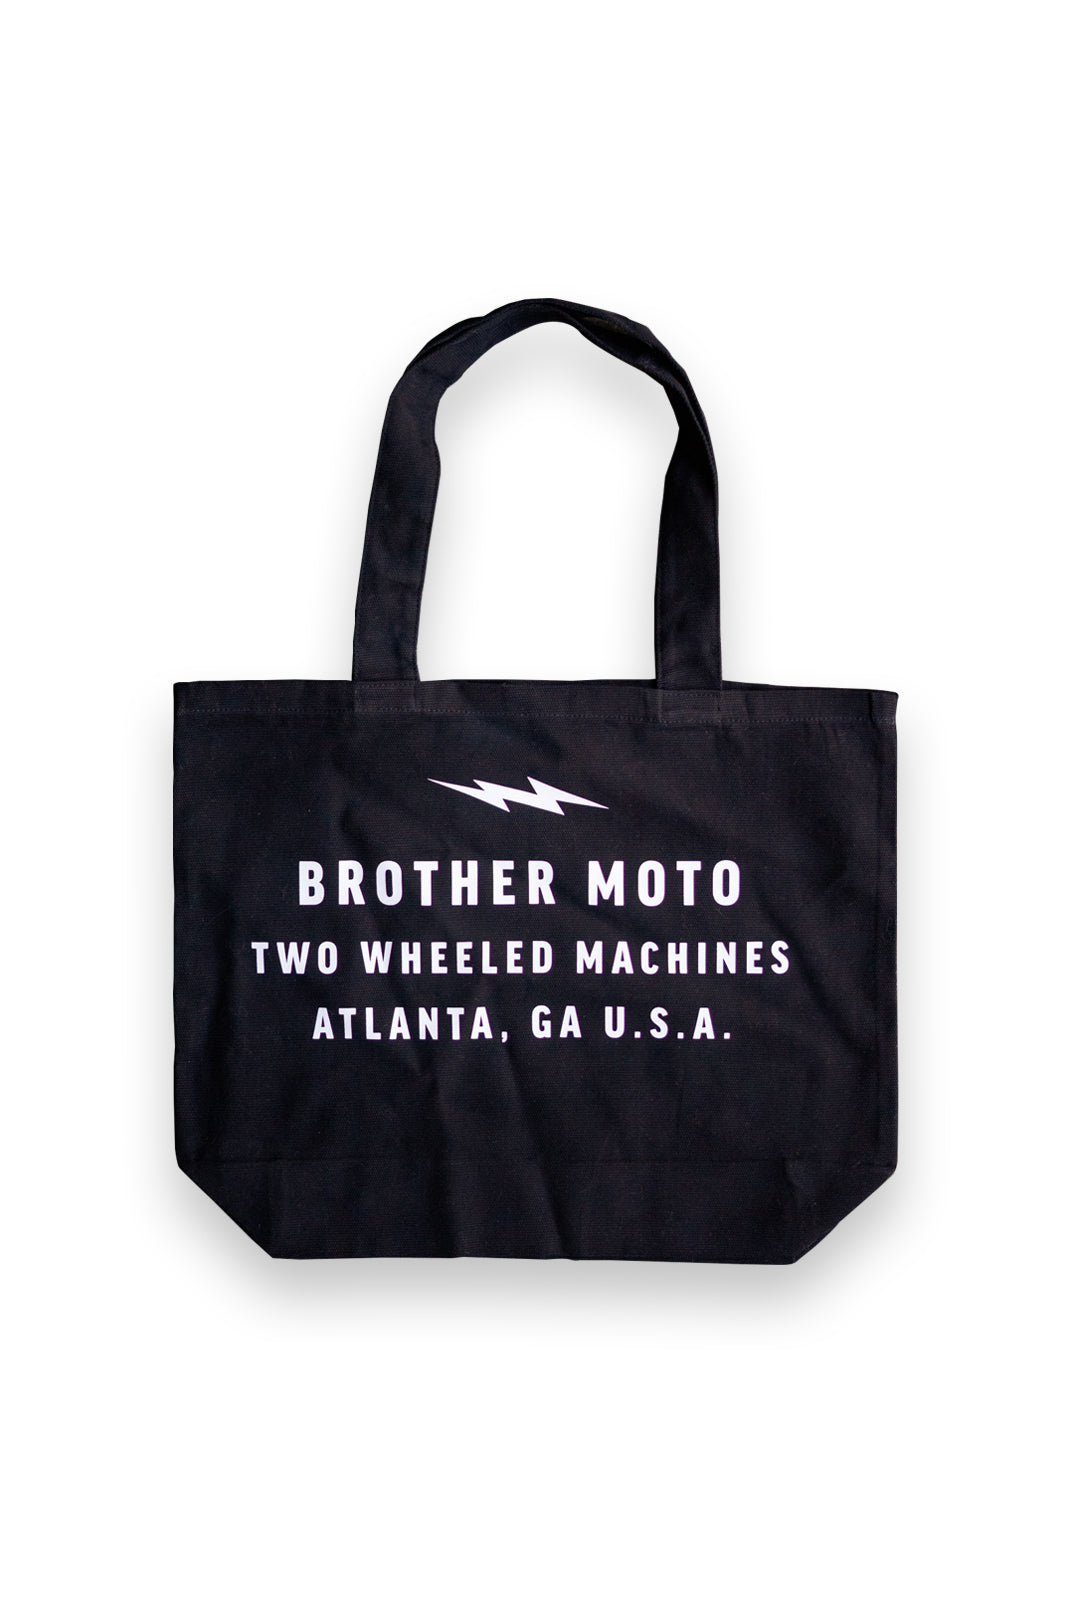 Brother Moto Tote bag white text